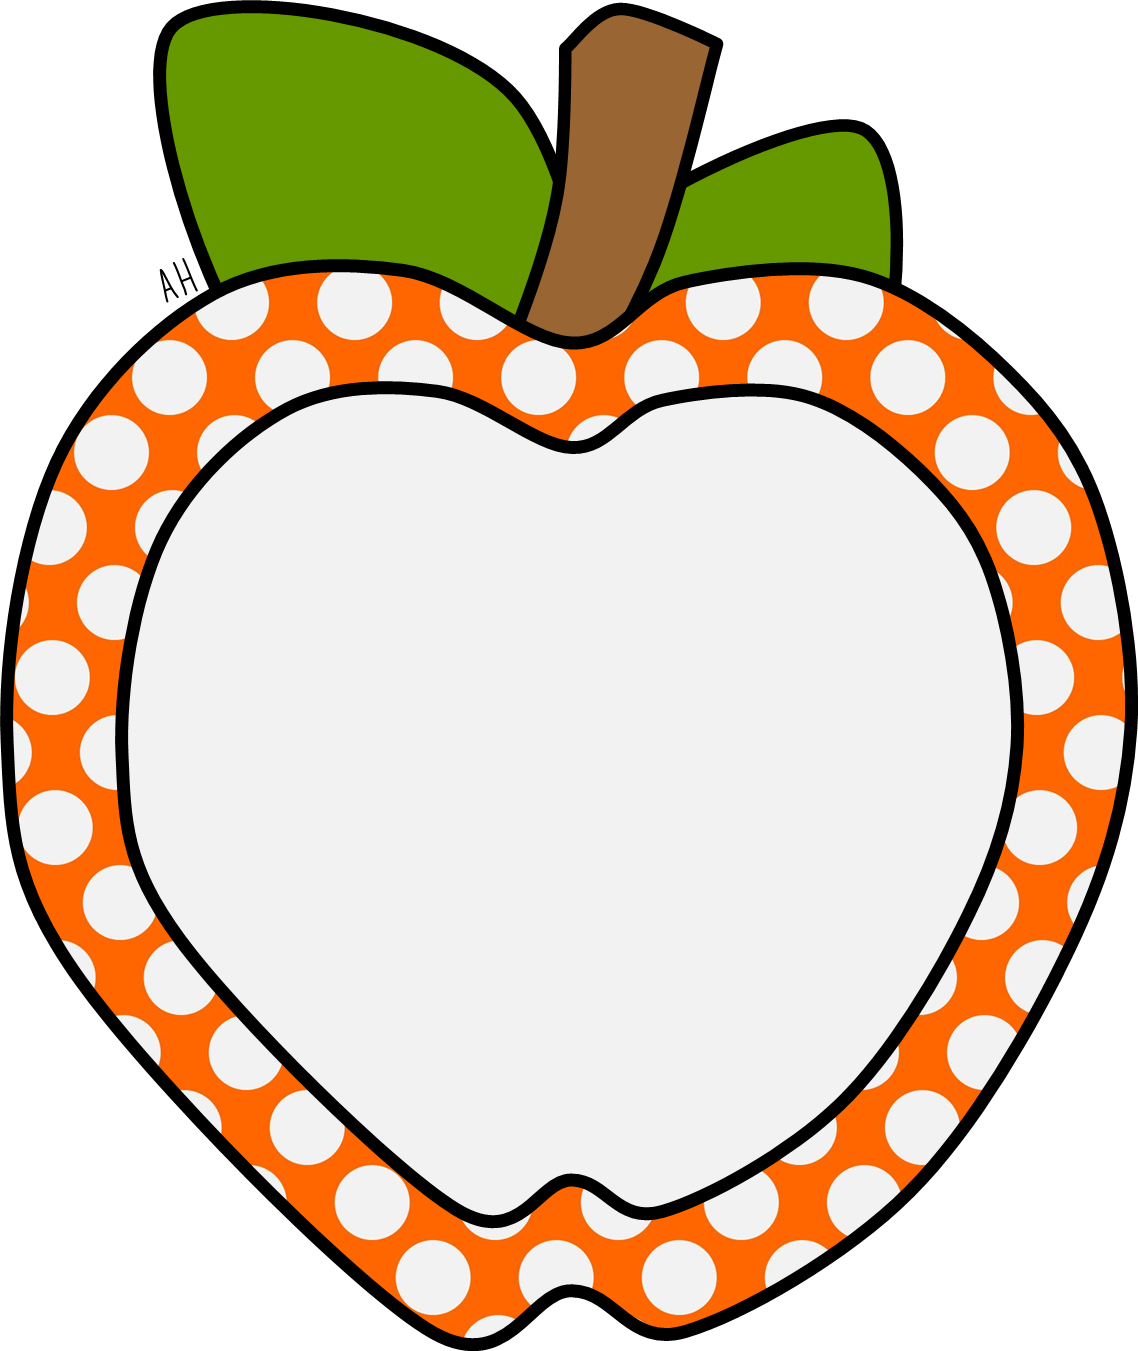 Apple clipart border image Pin by Manuela Battistoni on Marcos (Alimentos) | Pinterest | Apples ... image